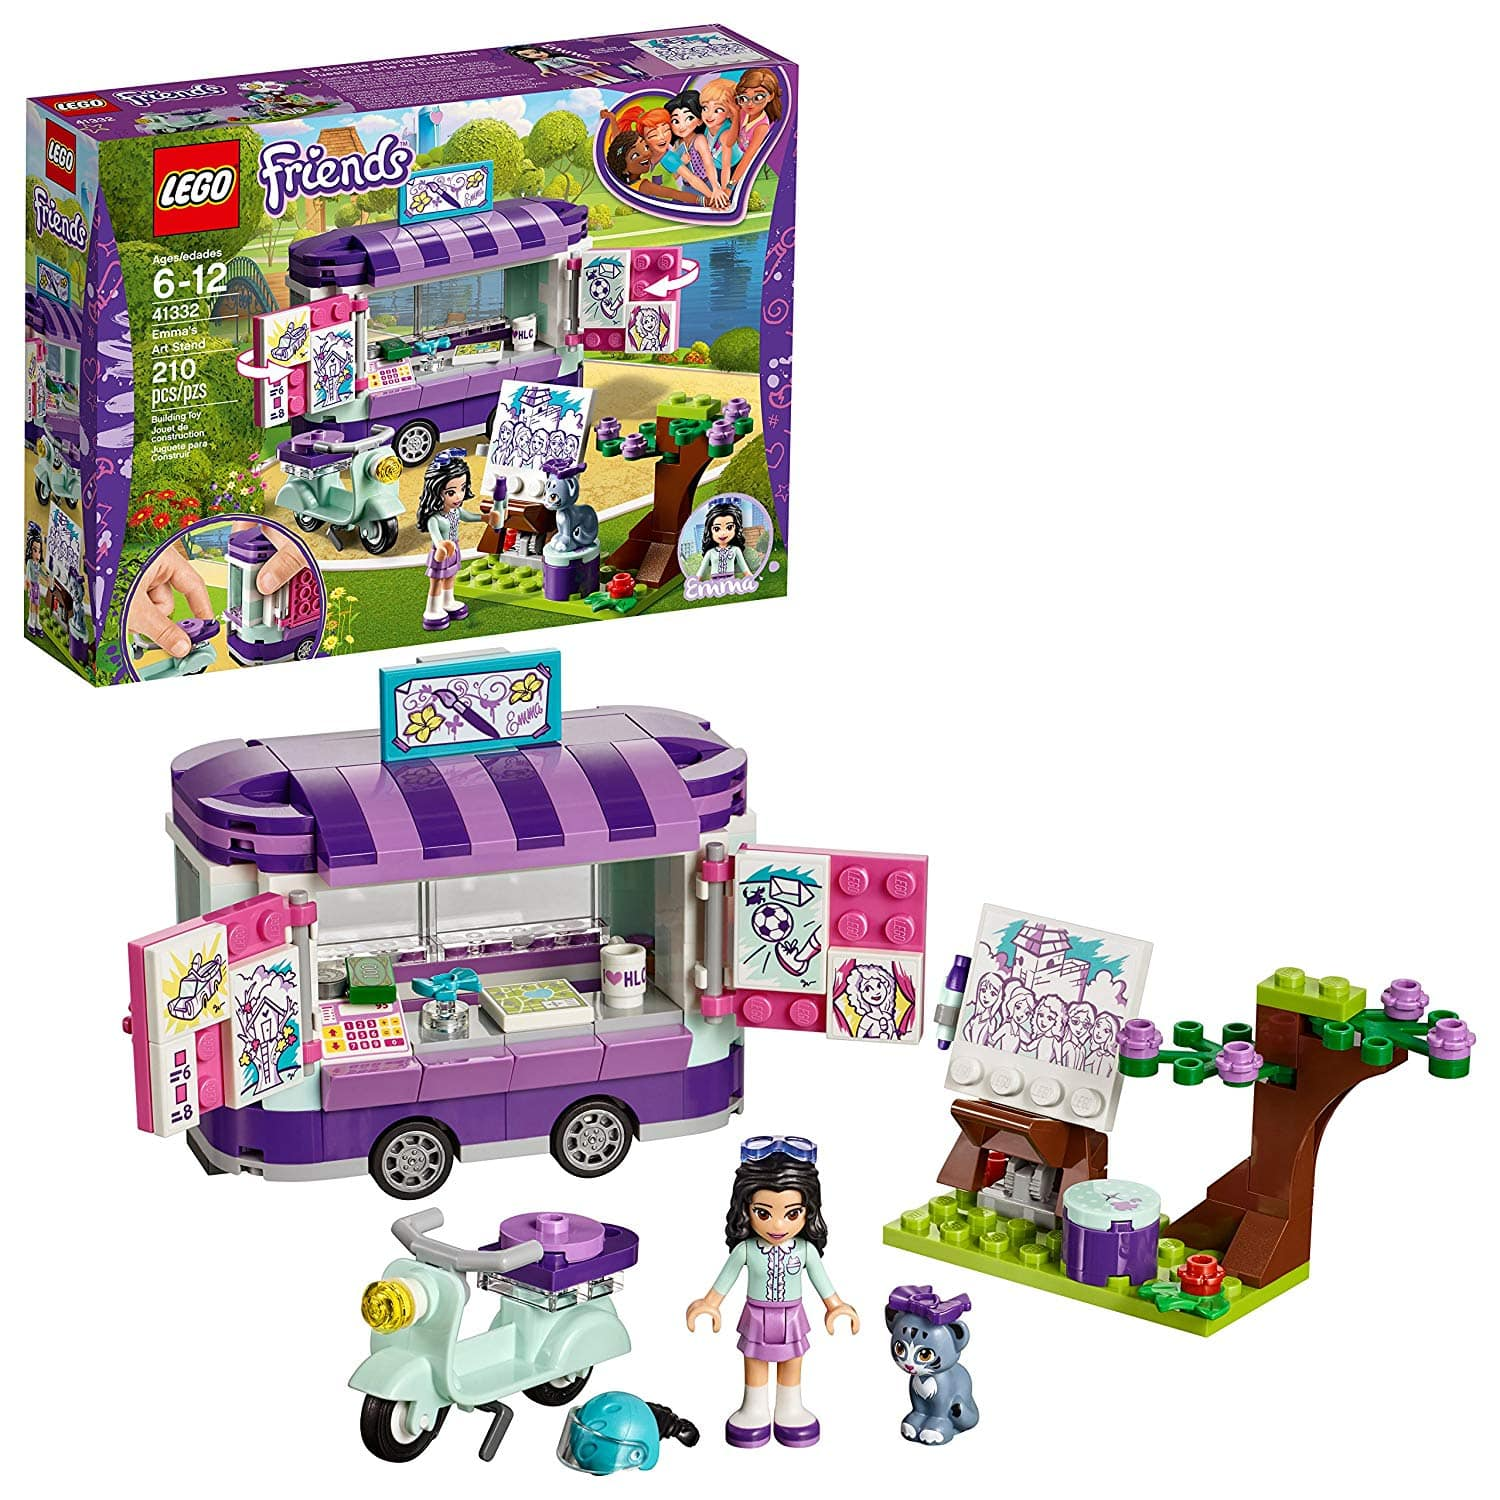 LEGO Friends Emma's Art Stand (41332) Building Set $11.99 - Walmart / Amazon